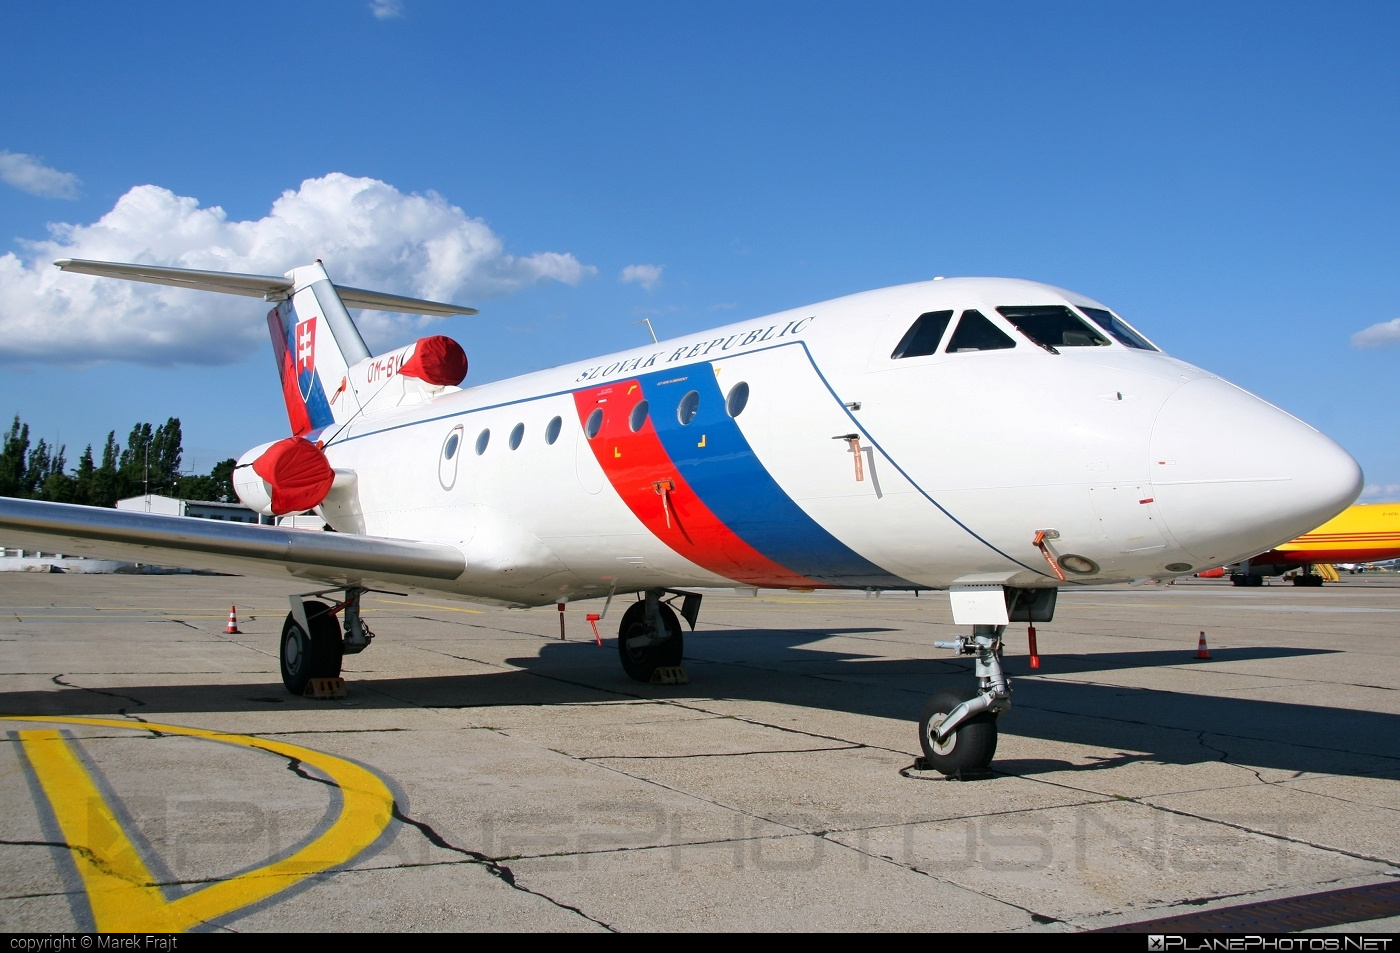 Yakovlev Yak-40 - OM-BYL operated by Letecký útvar MV SR (Slovak Government Flying Service) #yak #yak40 #yakovlev